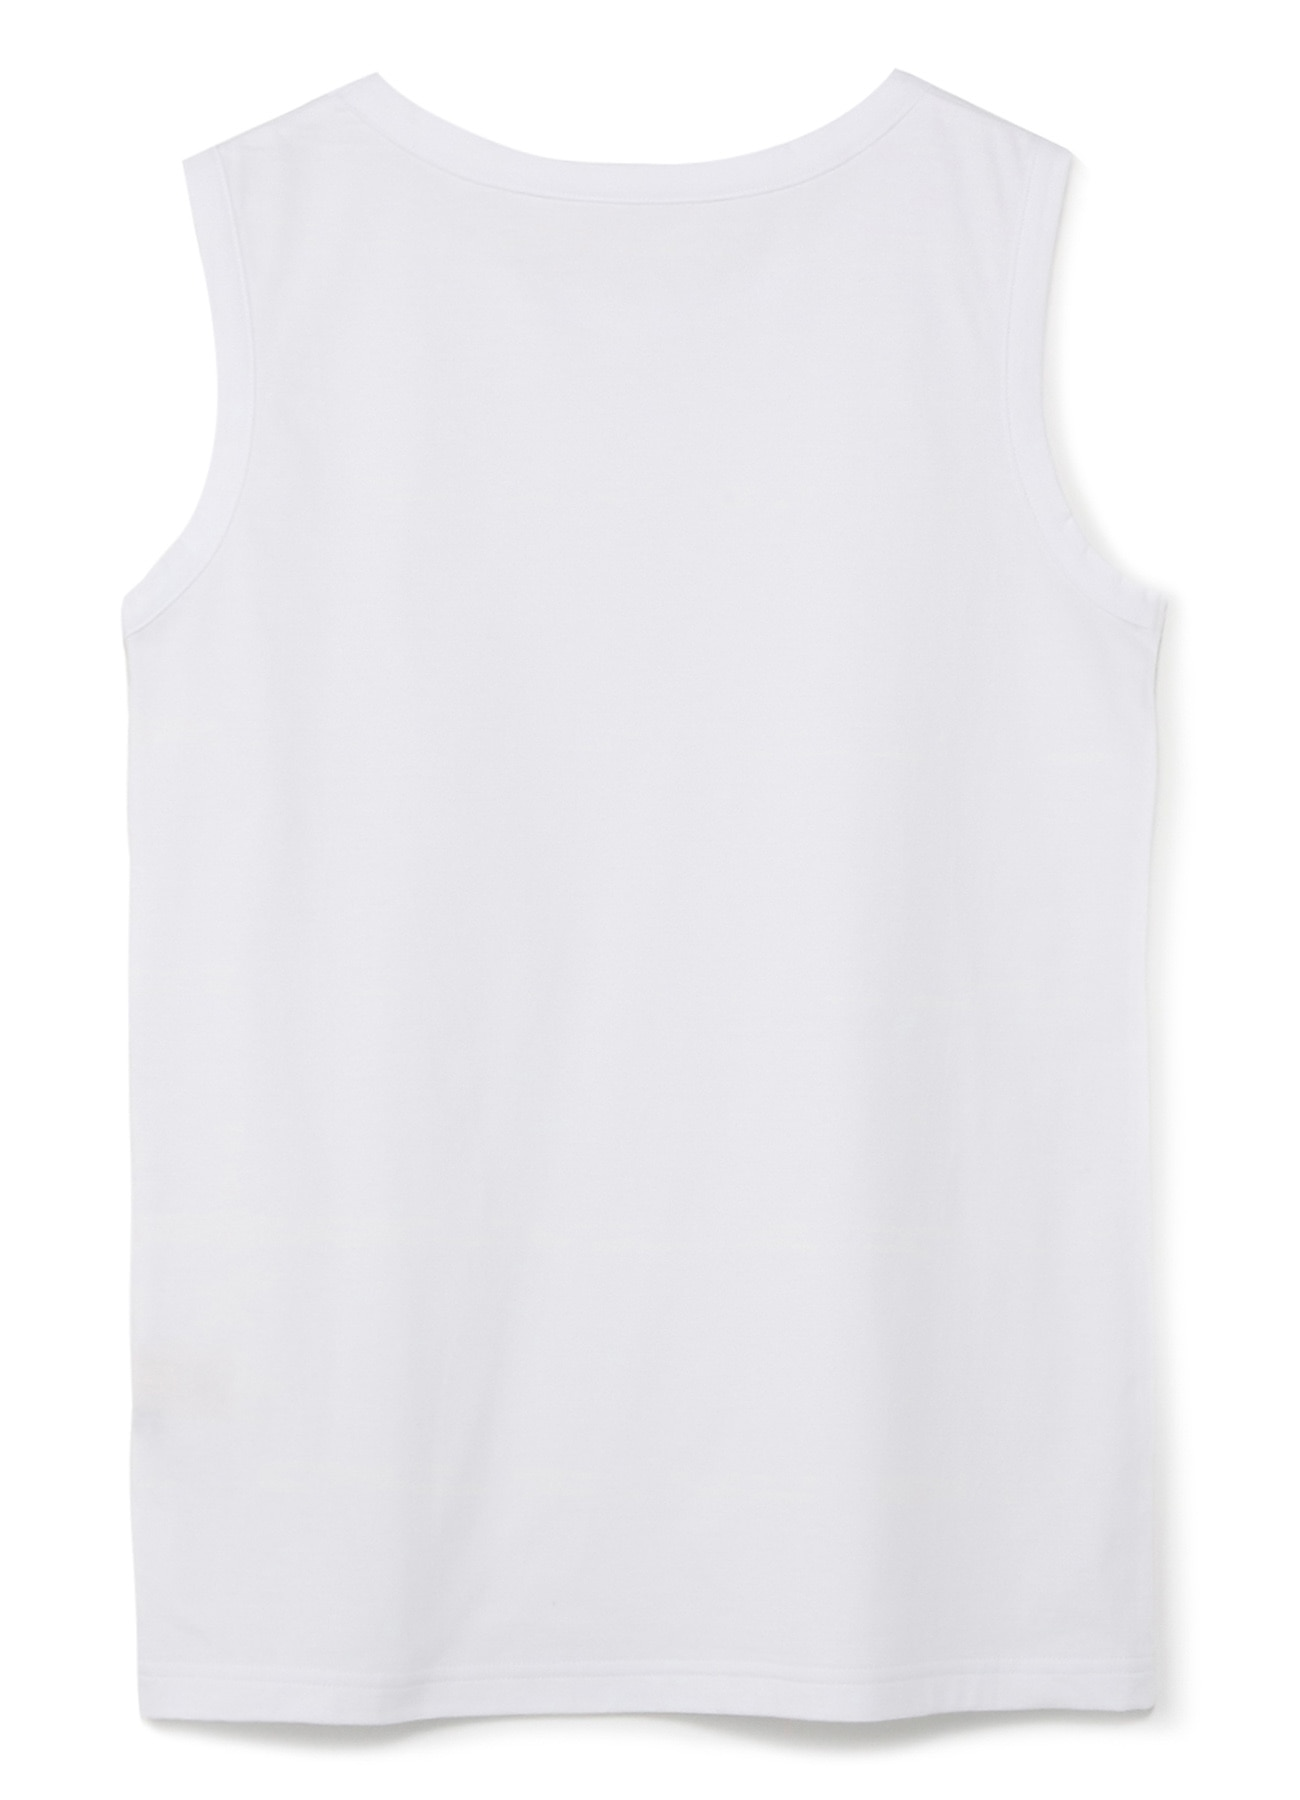 30 / cotton Jersey Tank Top